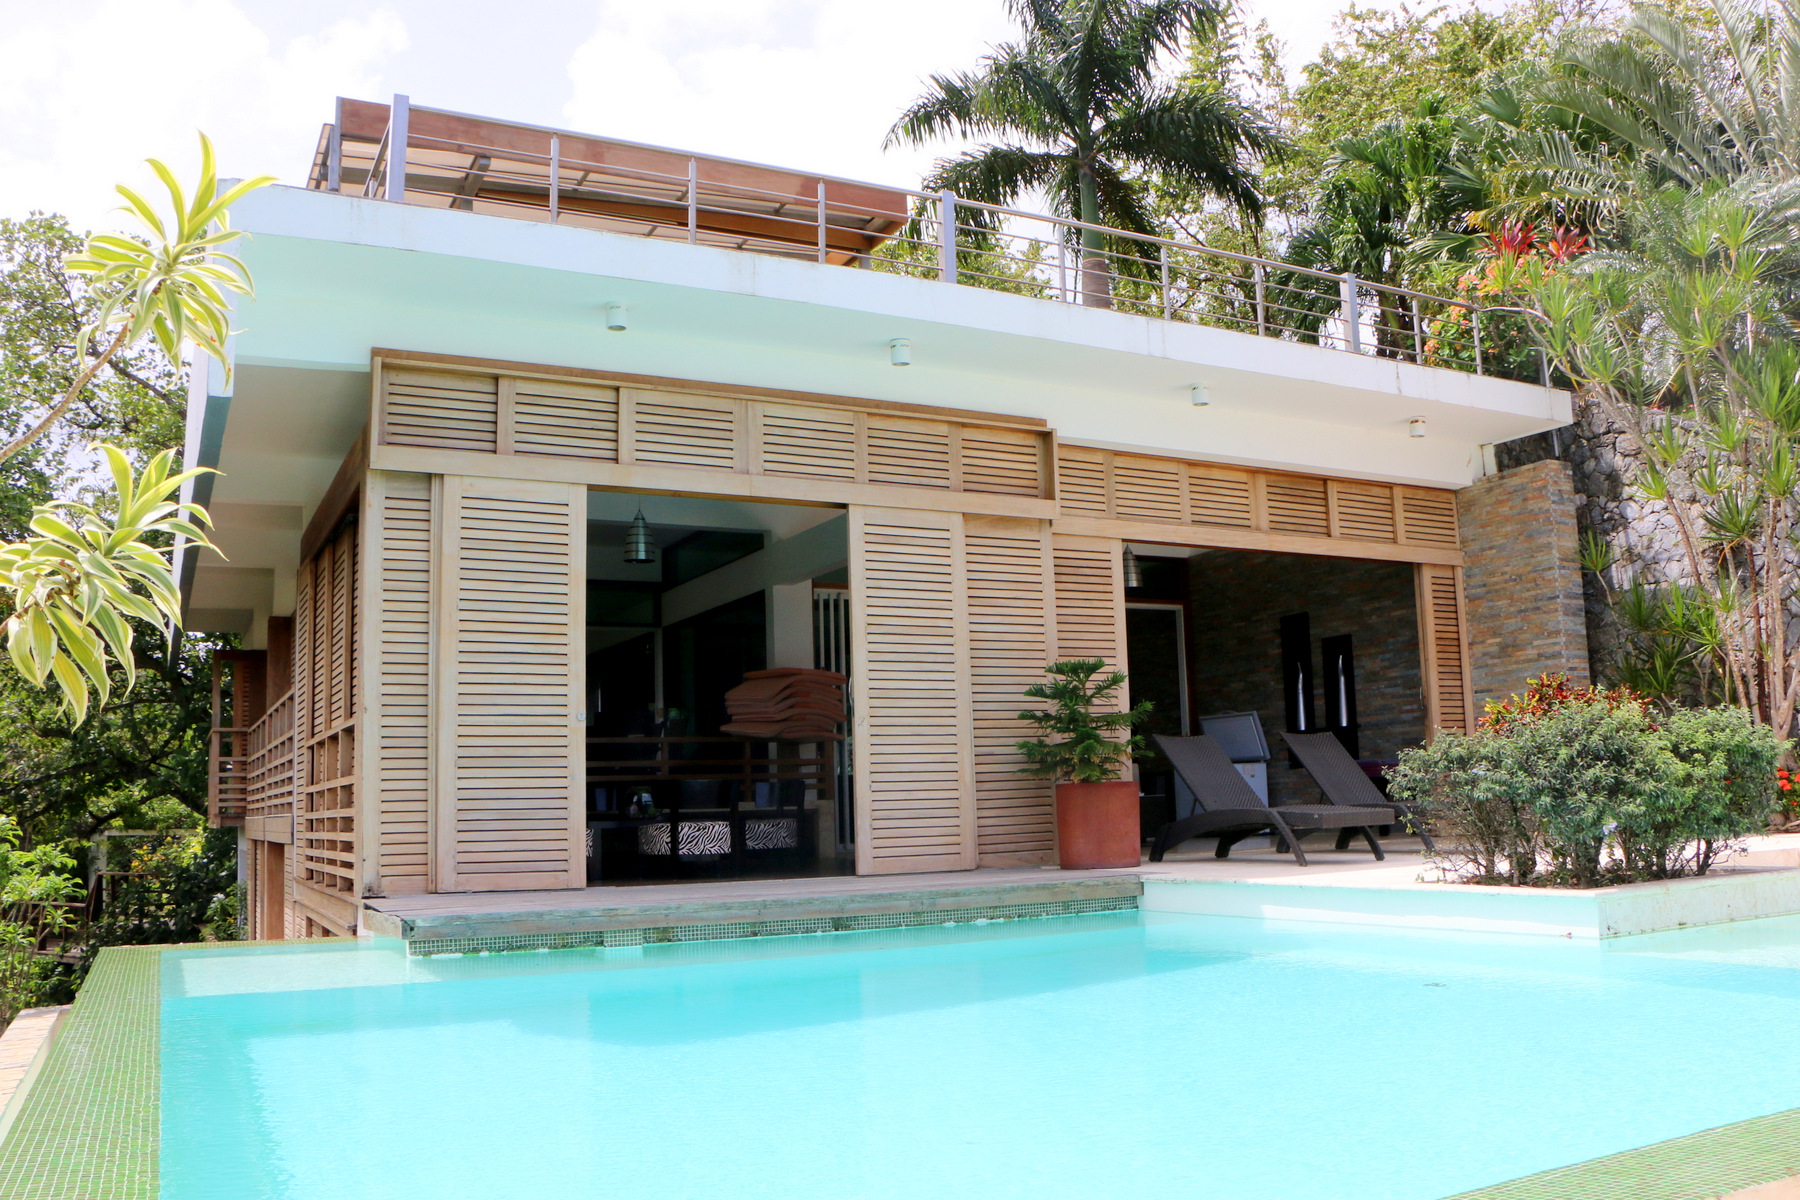 Single Family Home for Sale at Villa Julia Las Terrenas, Samana, Dominican Republic